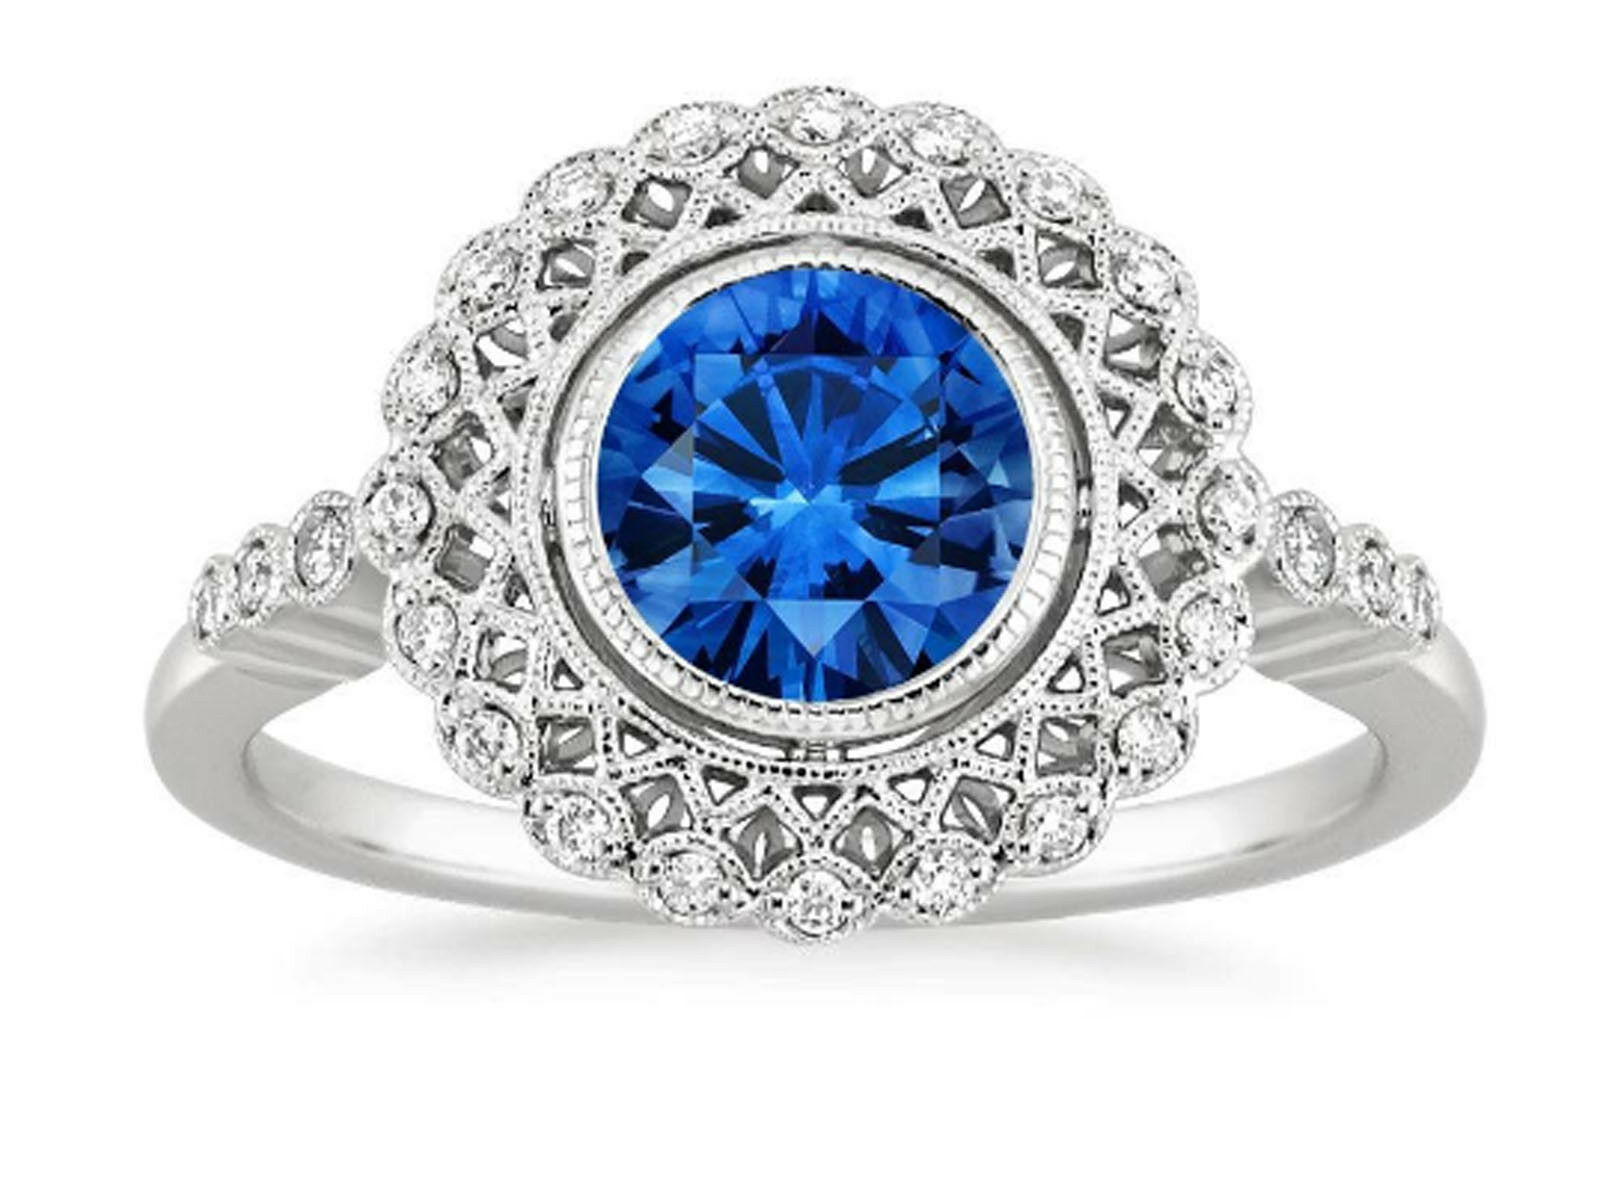 1.55 Ct bluee Sapphire Engagement Ring 14K Real White gold Diamond Rings Size 6 7